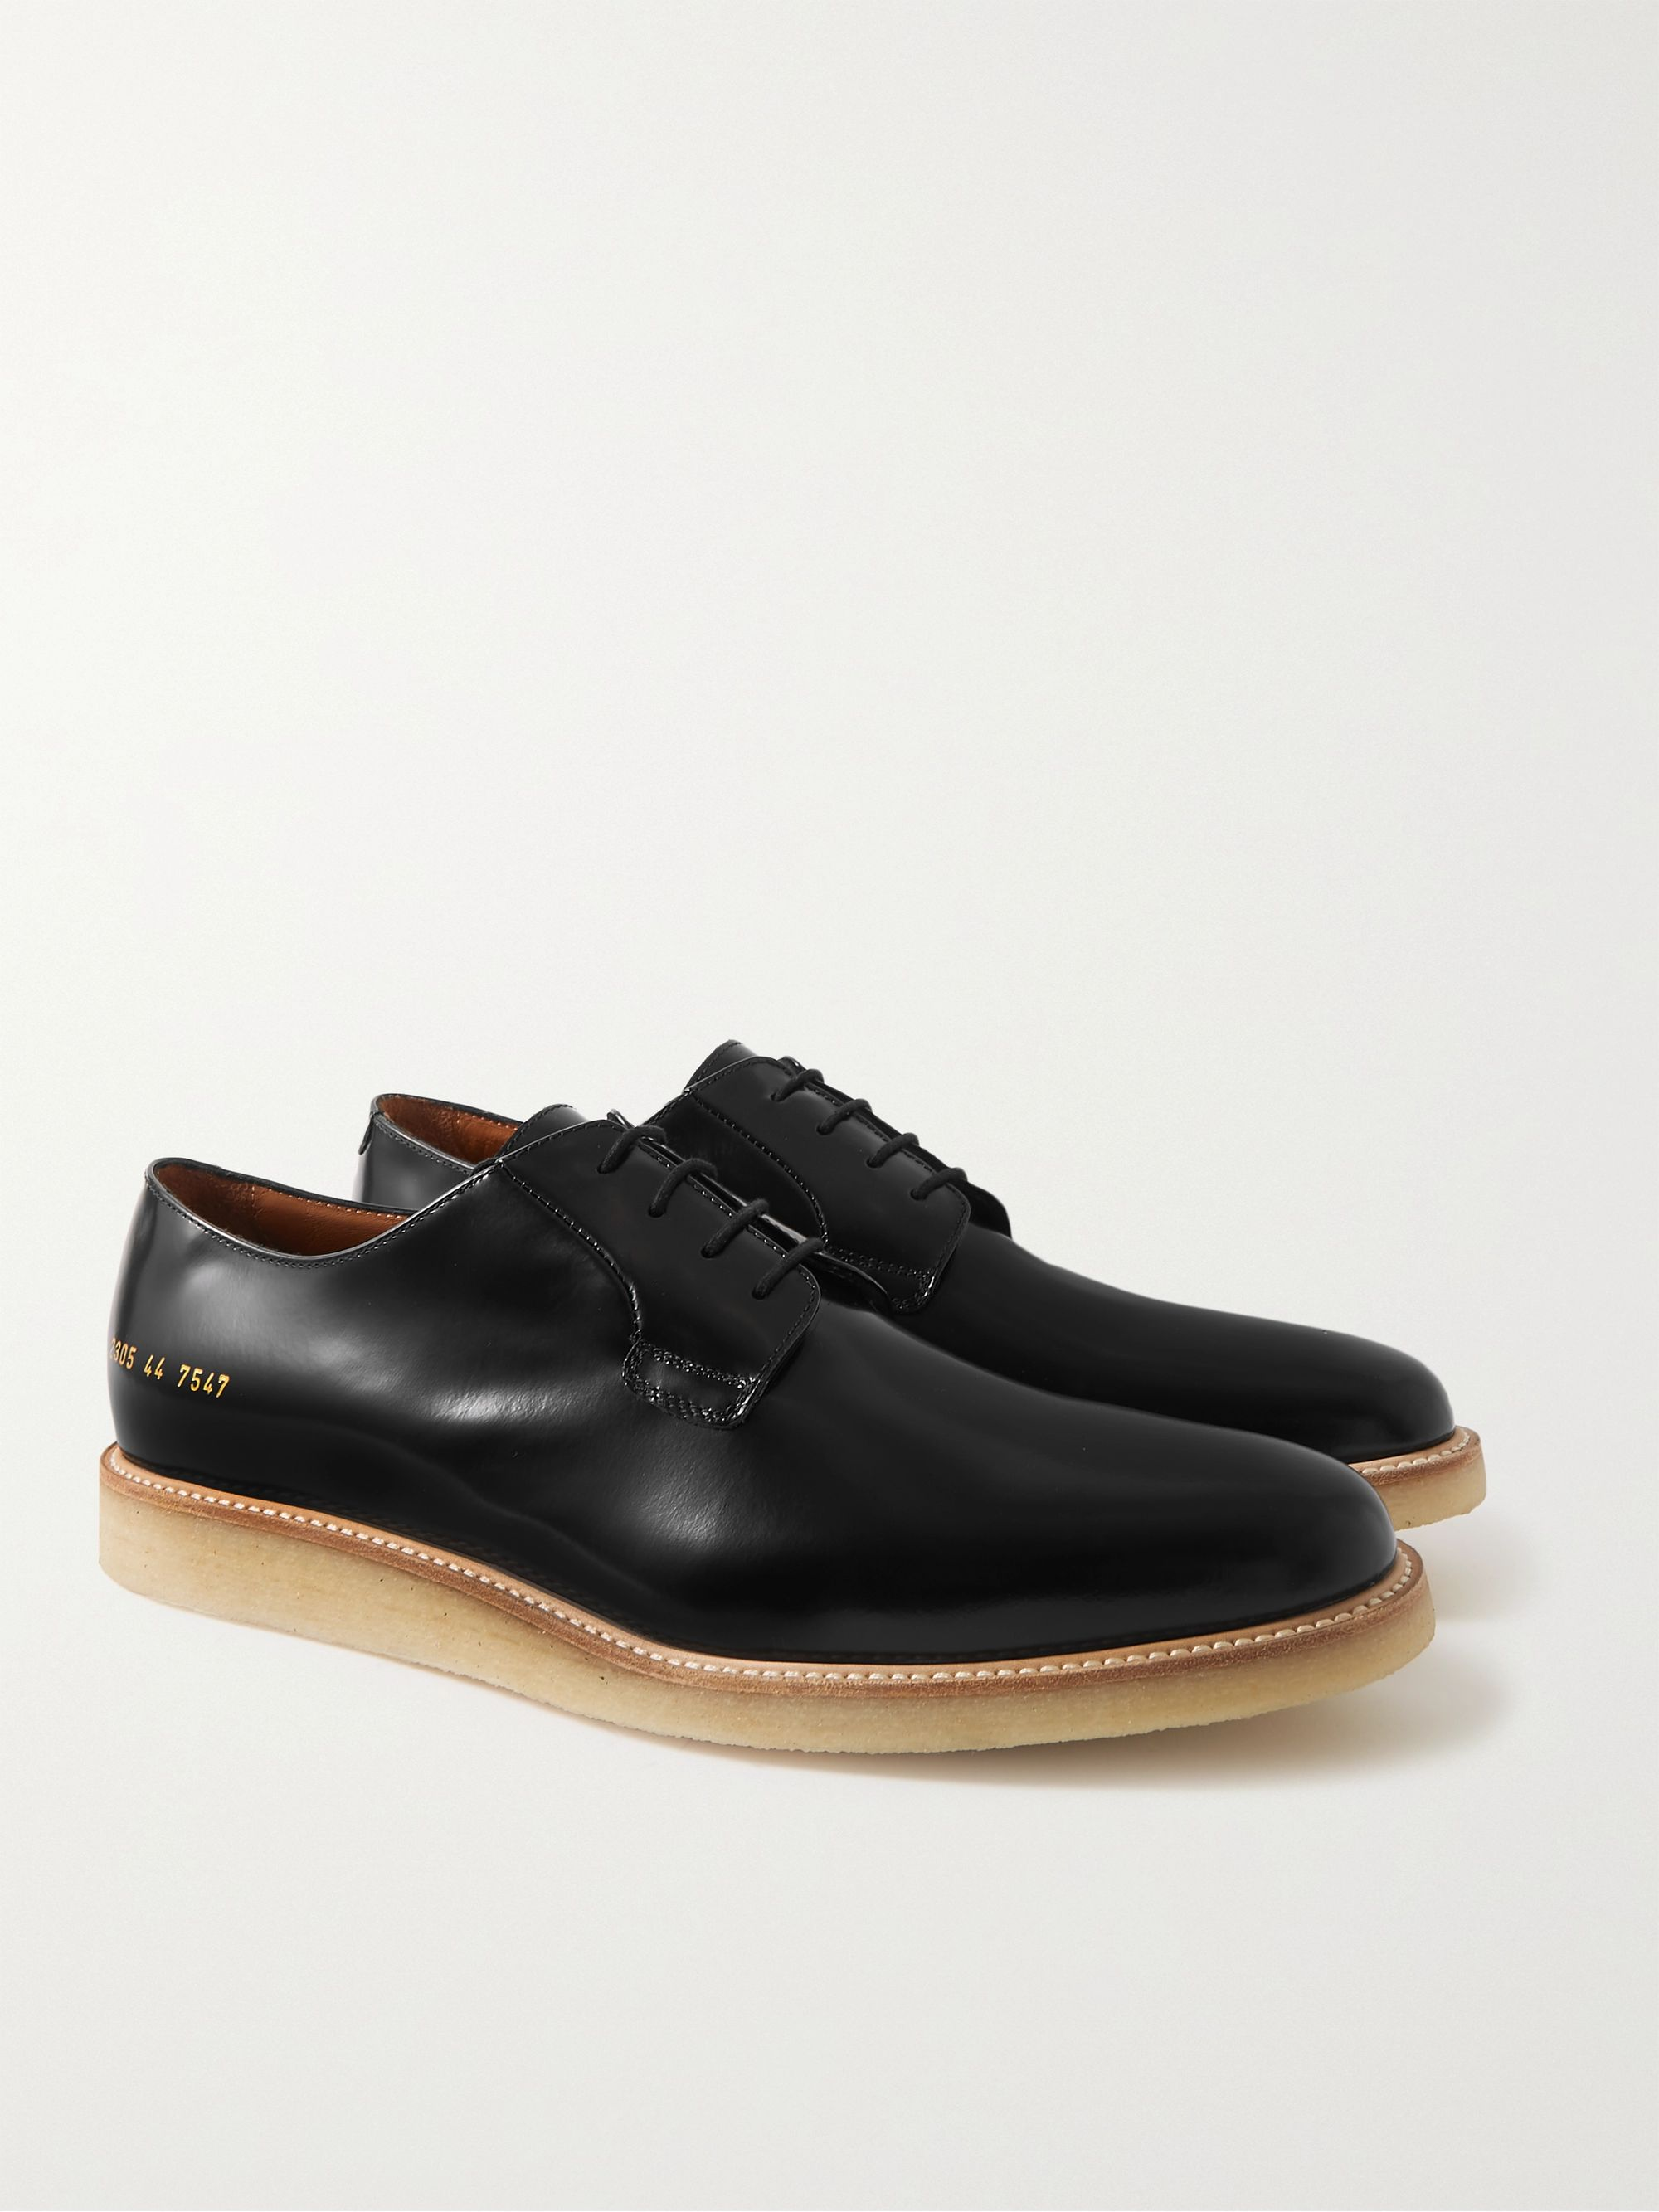 COMMON PROJECTS Polished-Leather Derby Shoes